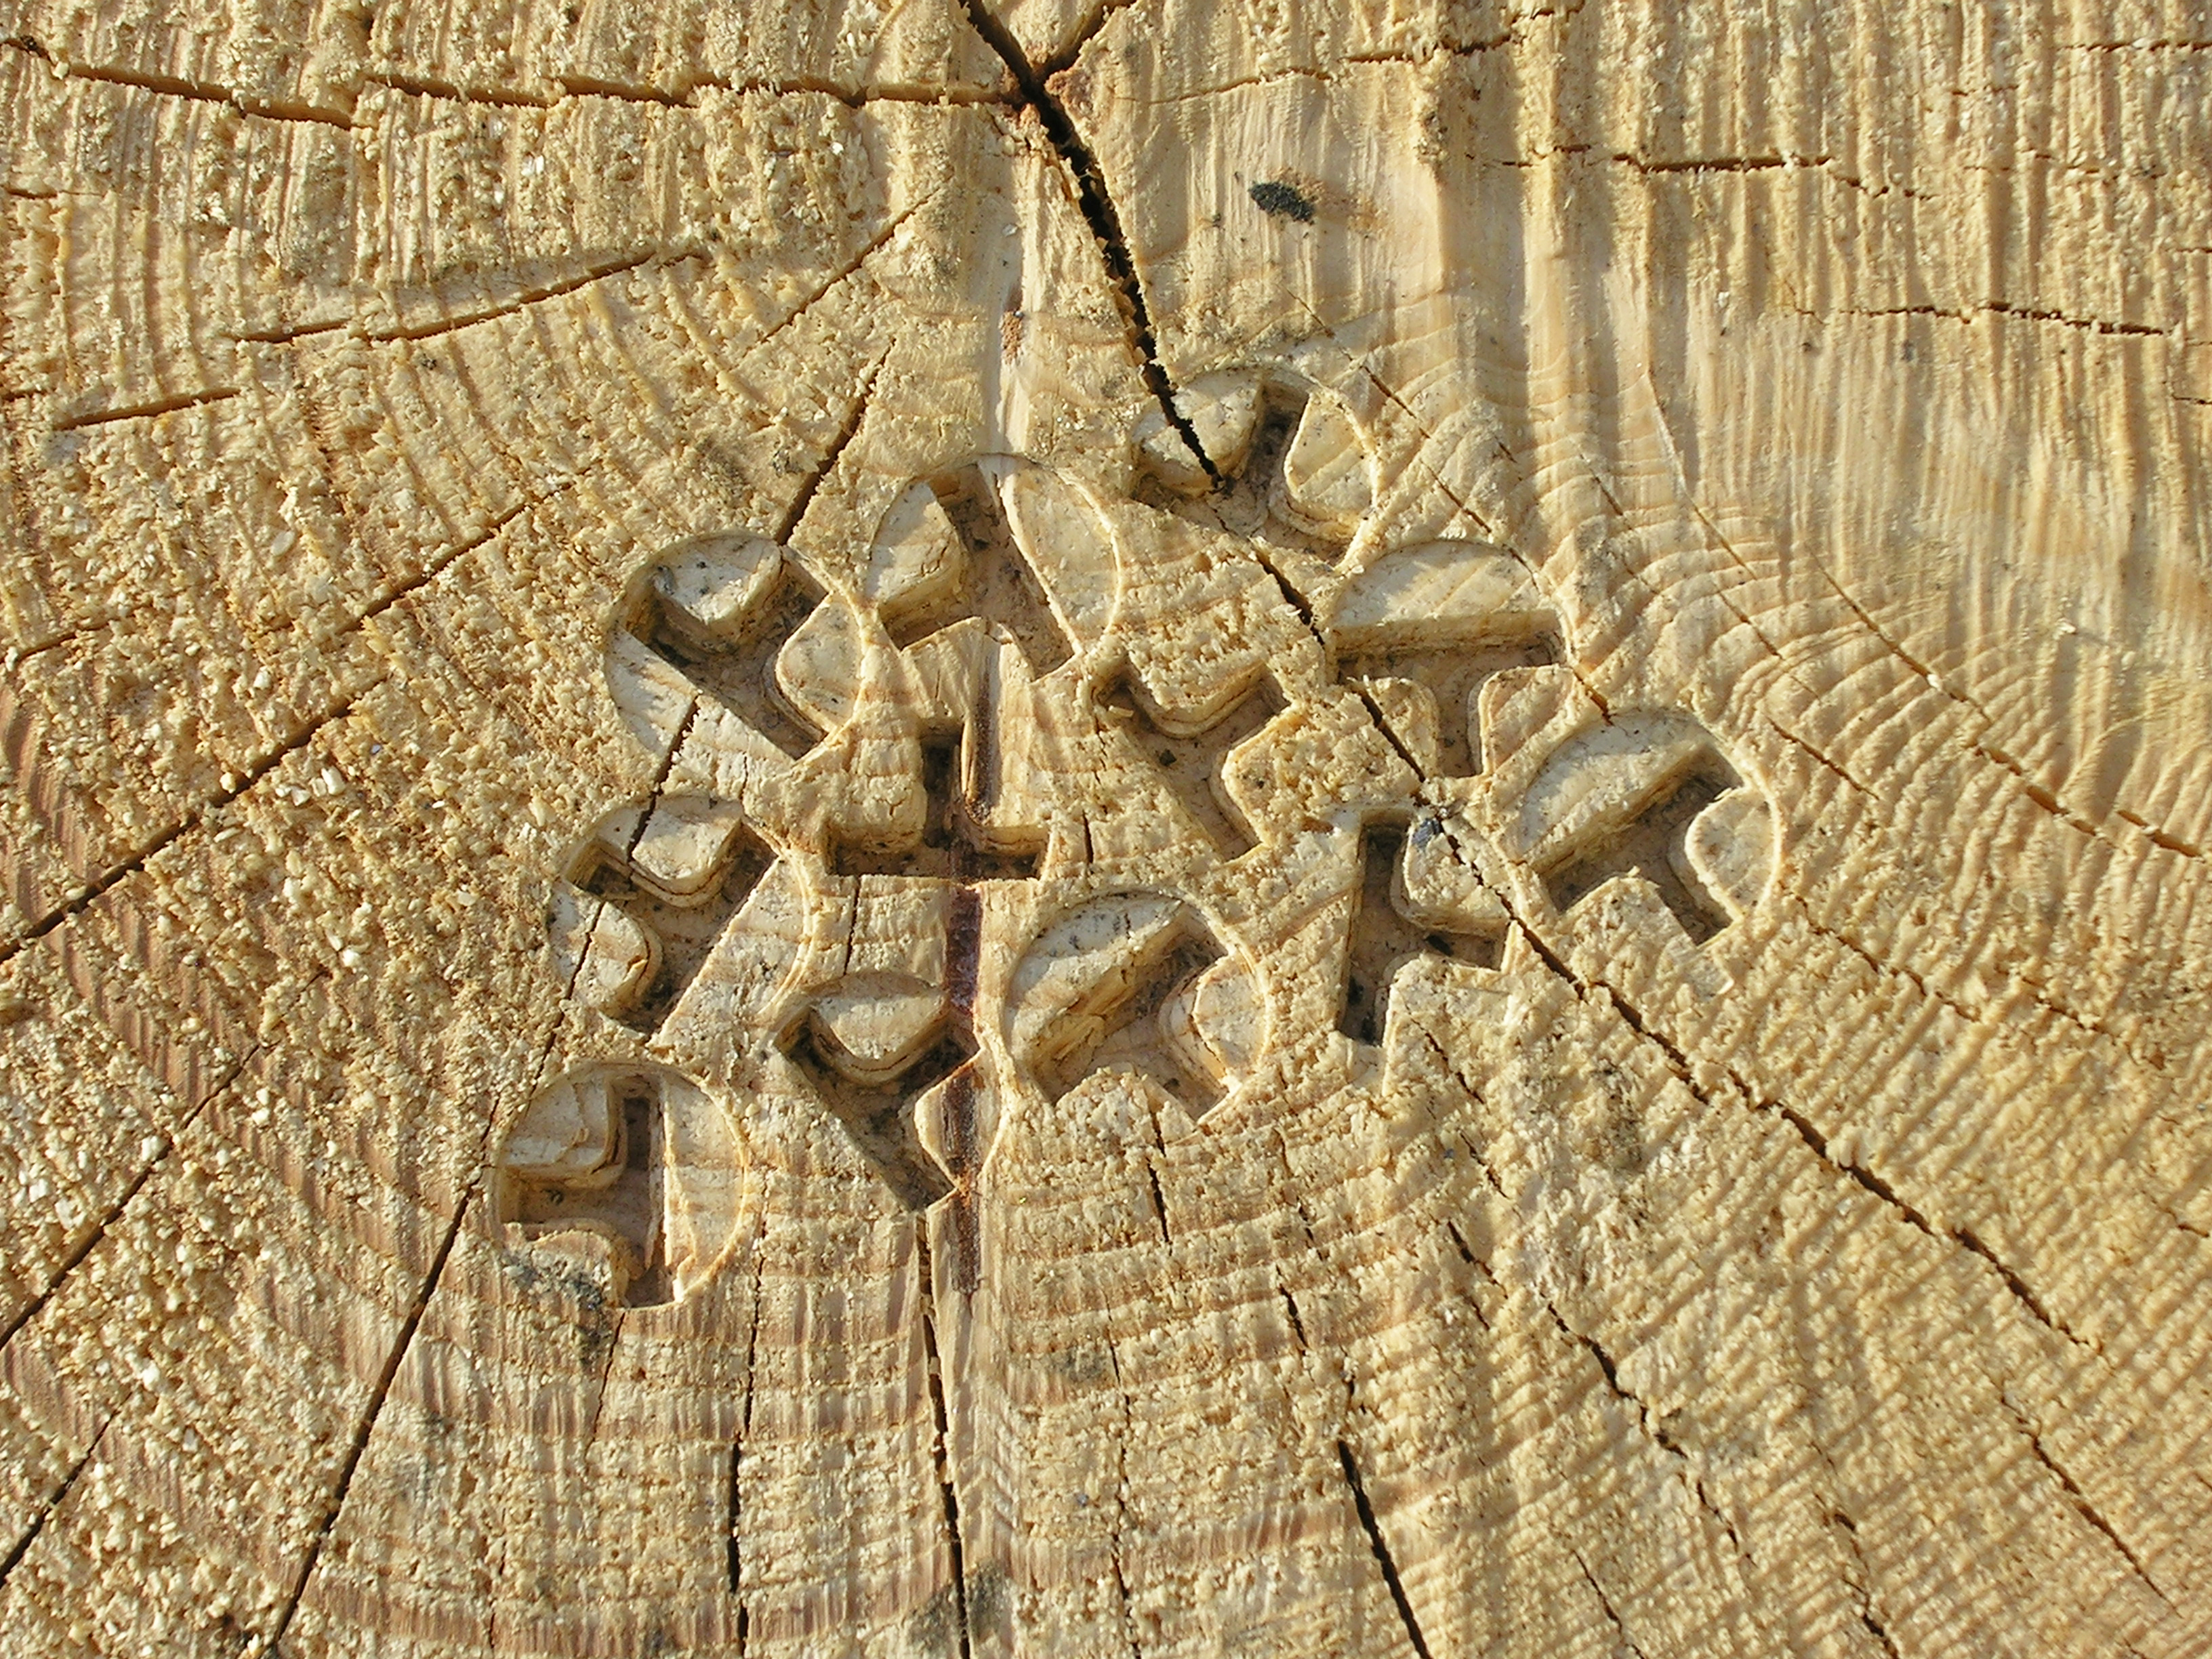 Timber is stamped with OtmetkaID, a marking system that provides guaranteed timber traceability.